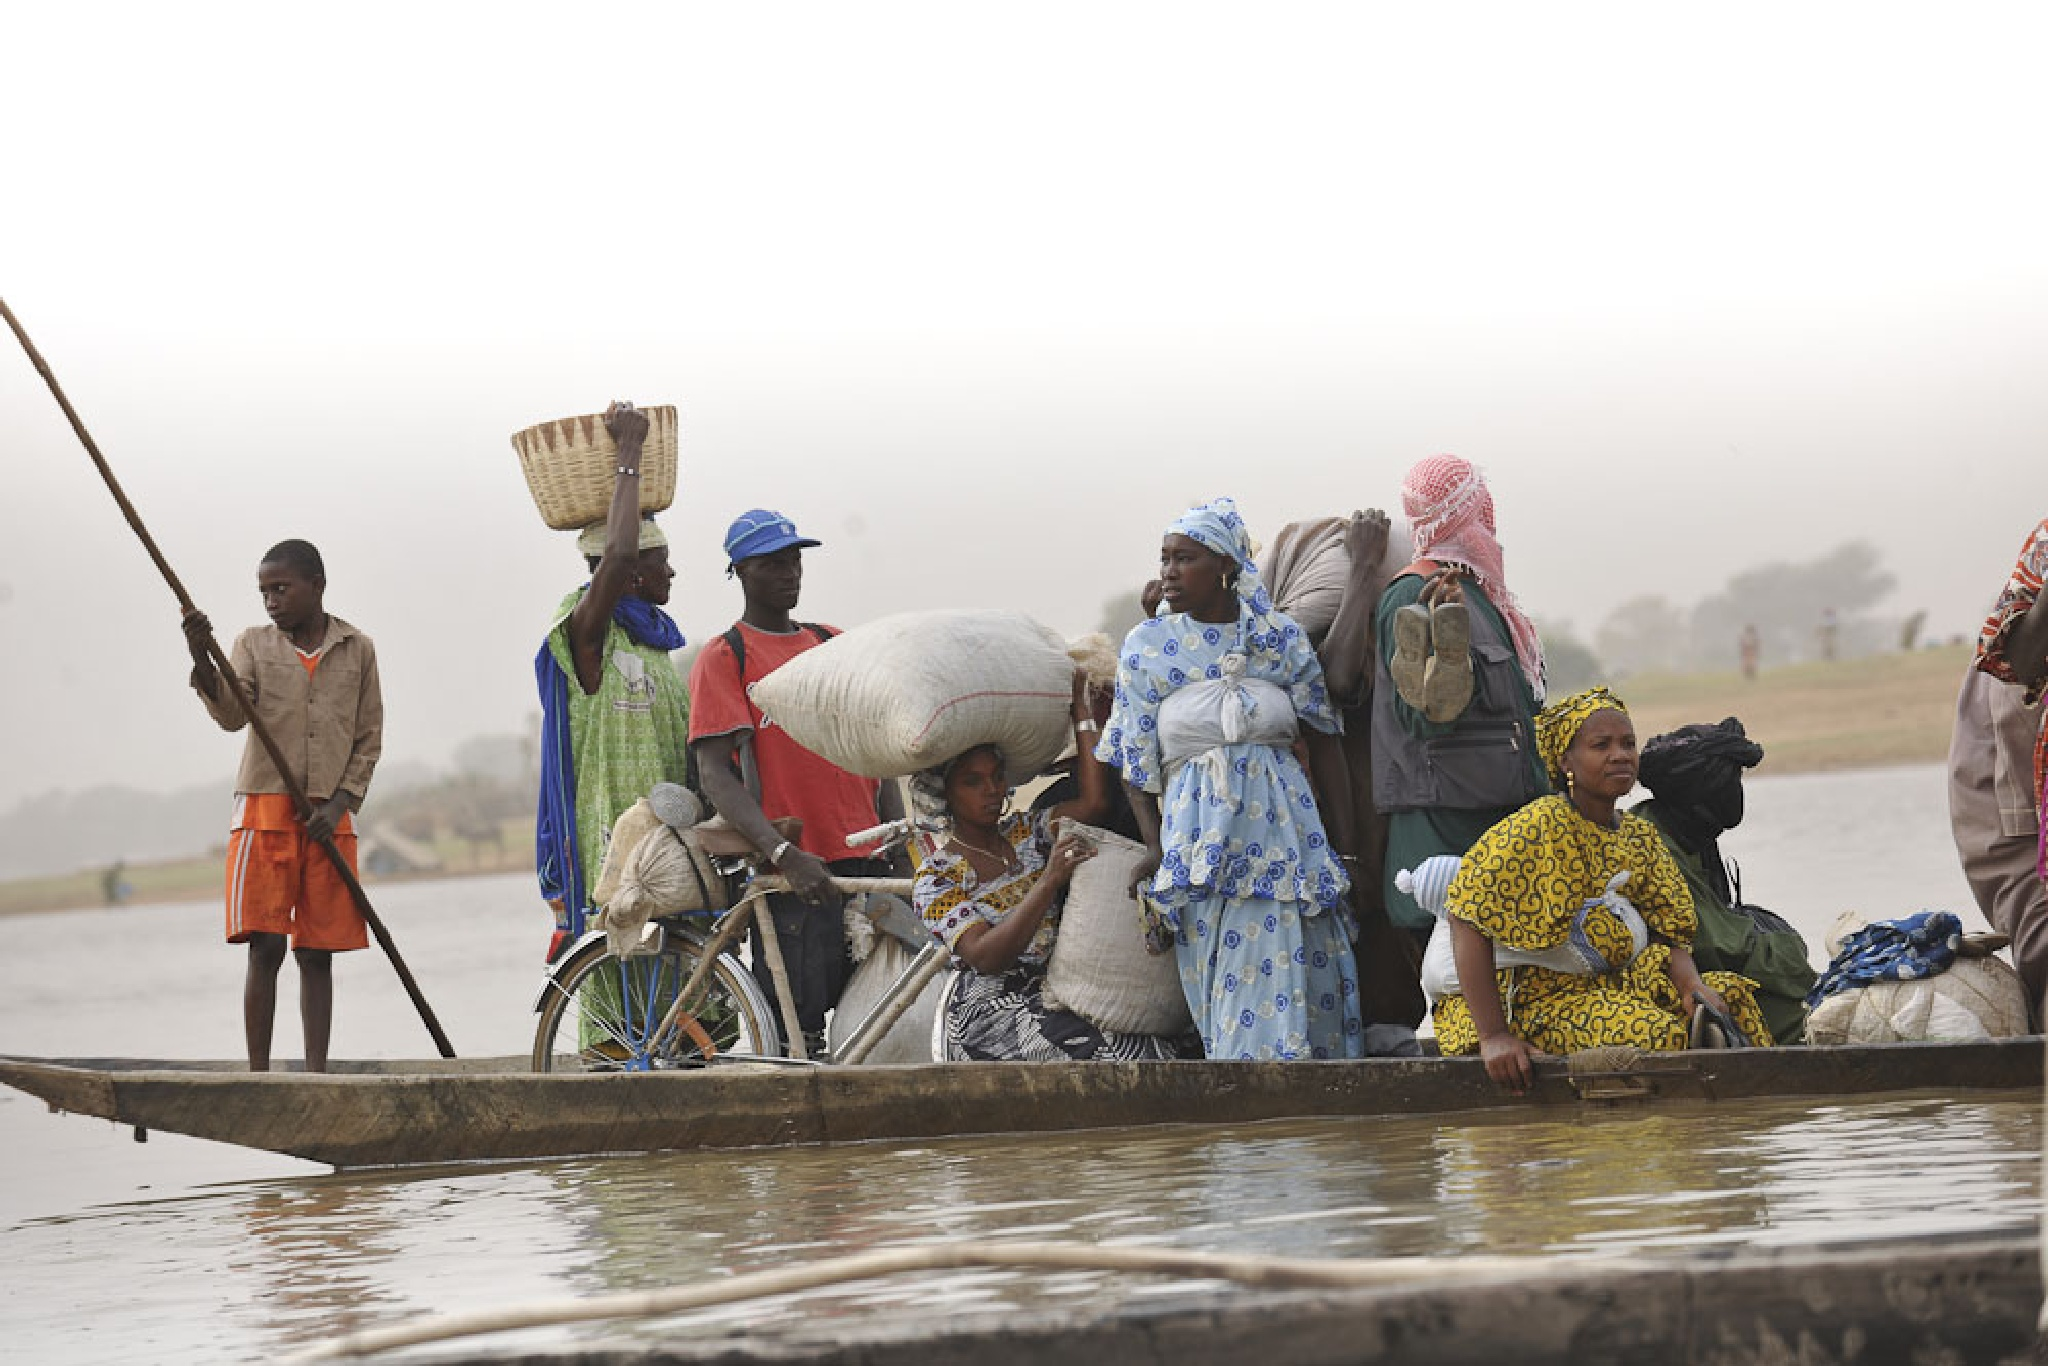 Bus home after shopping trip, River Niger, Mali by Martin Hartley